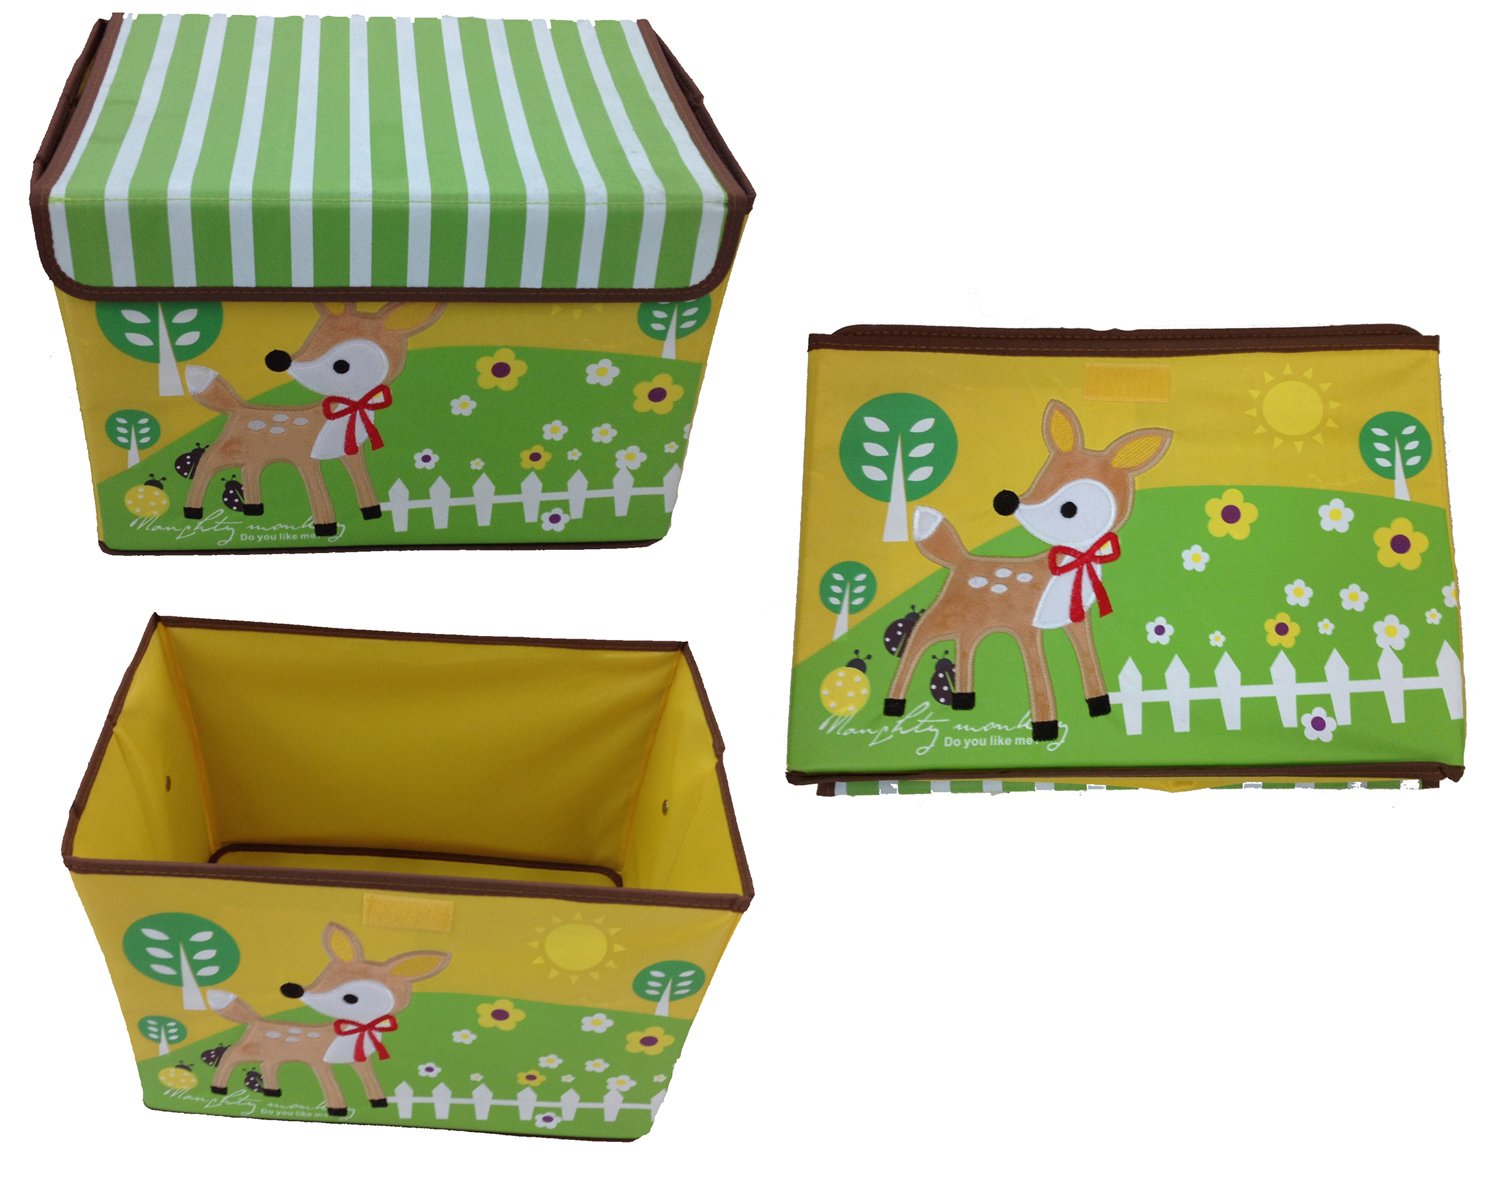 spielzeugbox hirsch aufbewahrungsbox spielzeugkiste aufbewahrung kinderm bel ebay. Black Bedroom Furniture Sets. Home Design Ideas